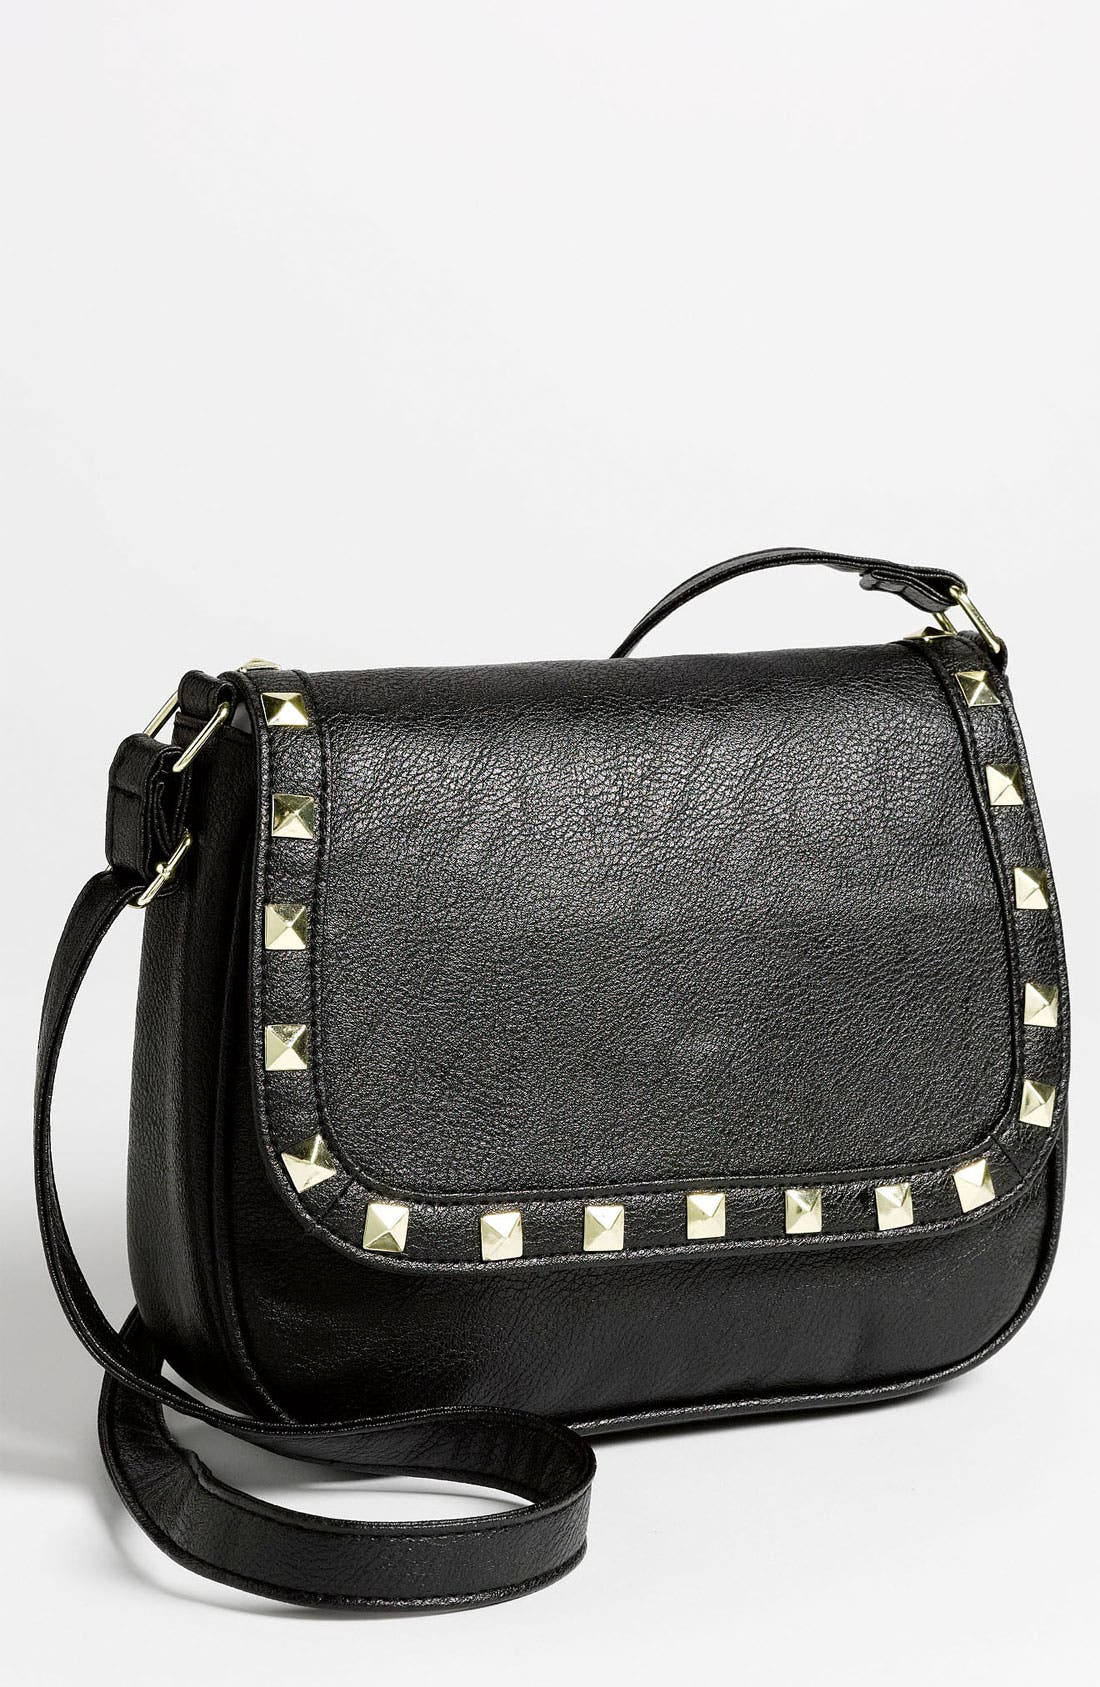 Main Image - OMG Studded Crossbody Bag